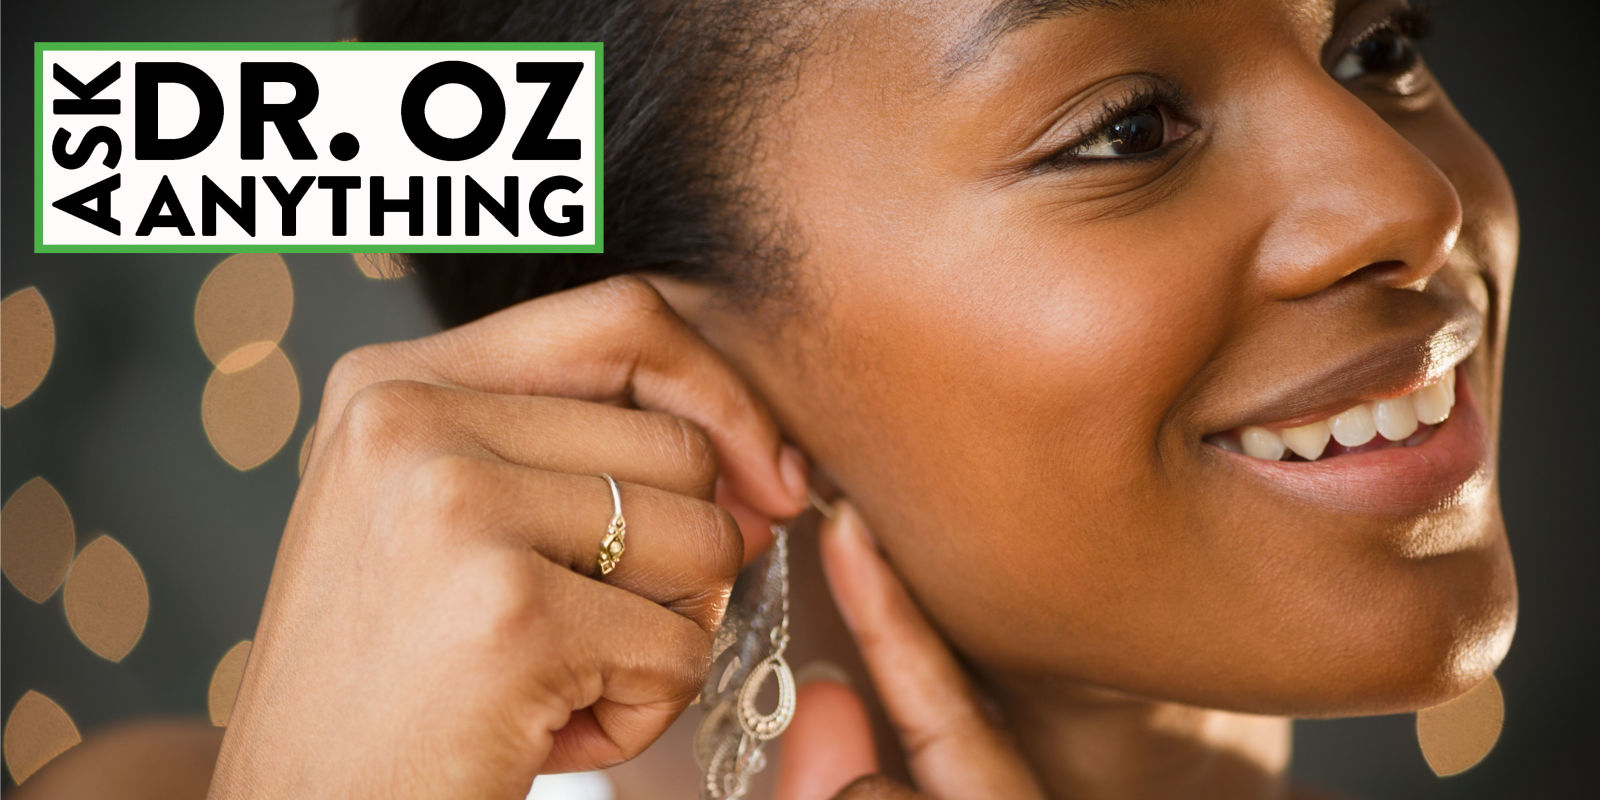 Why Do Some People's Ear Piercings Stretch And Others' Don't?  Torn Earlobe